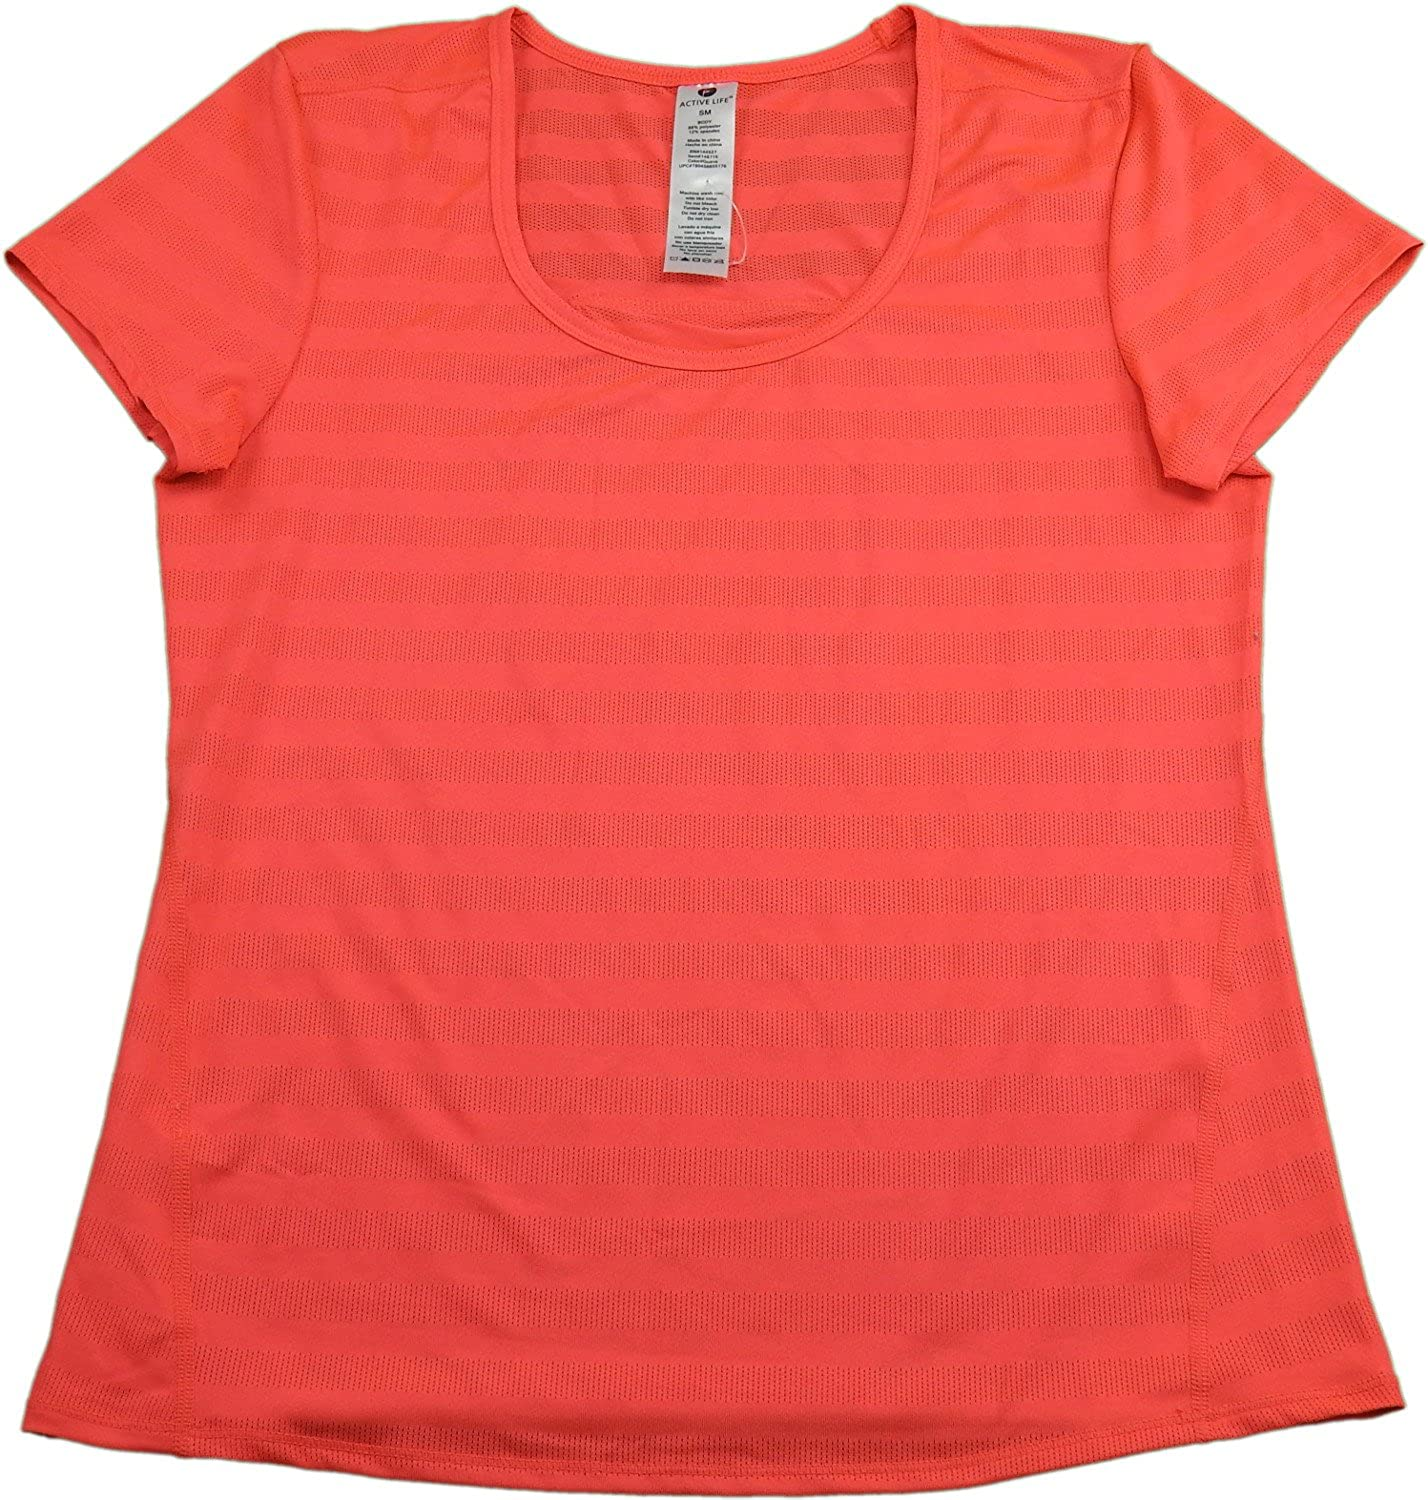 Active Life Ladies Size Small Performance Moisture Wicking Shirt, Guave